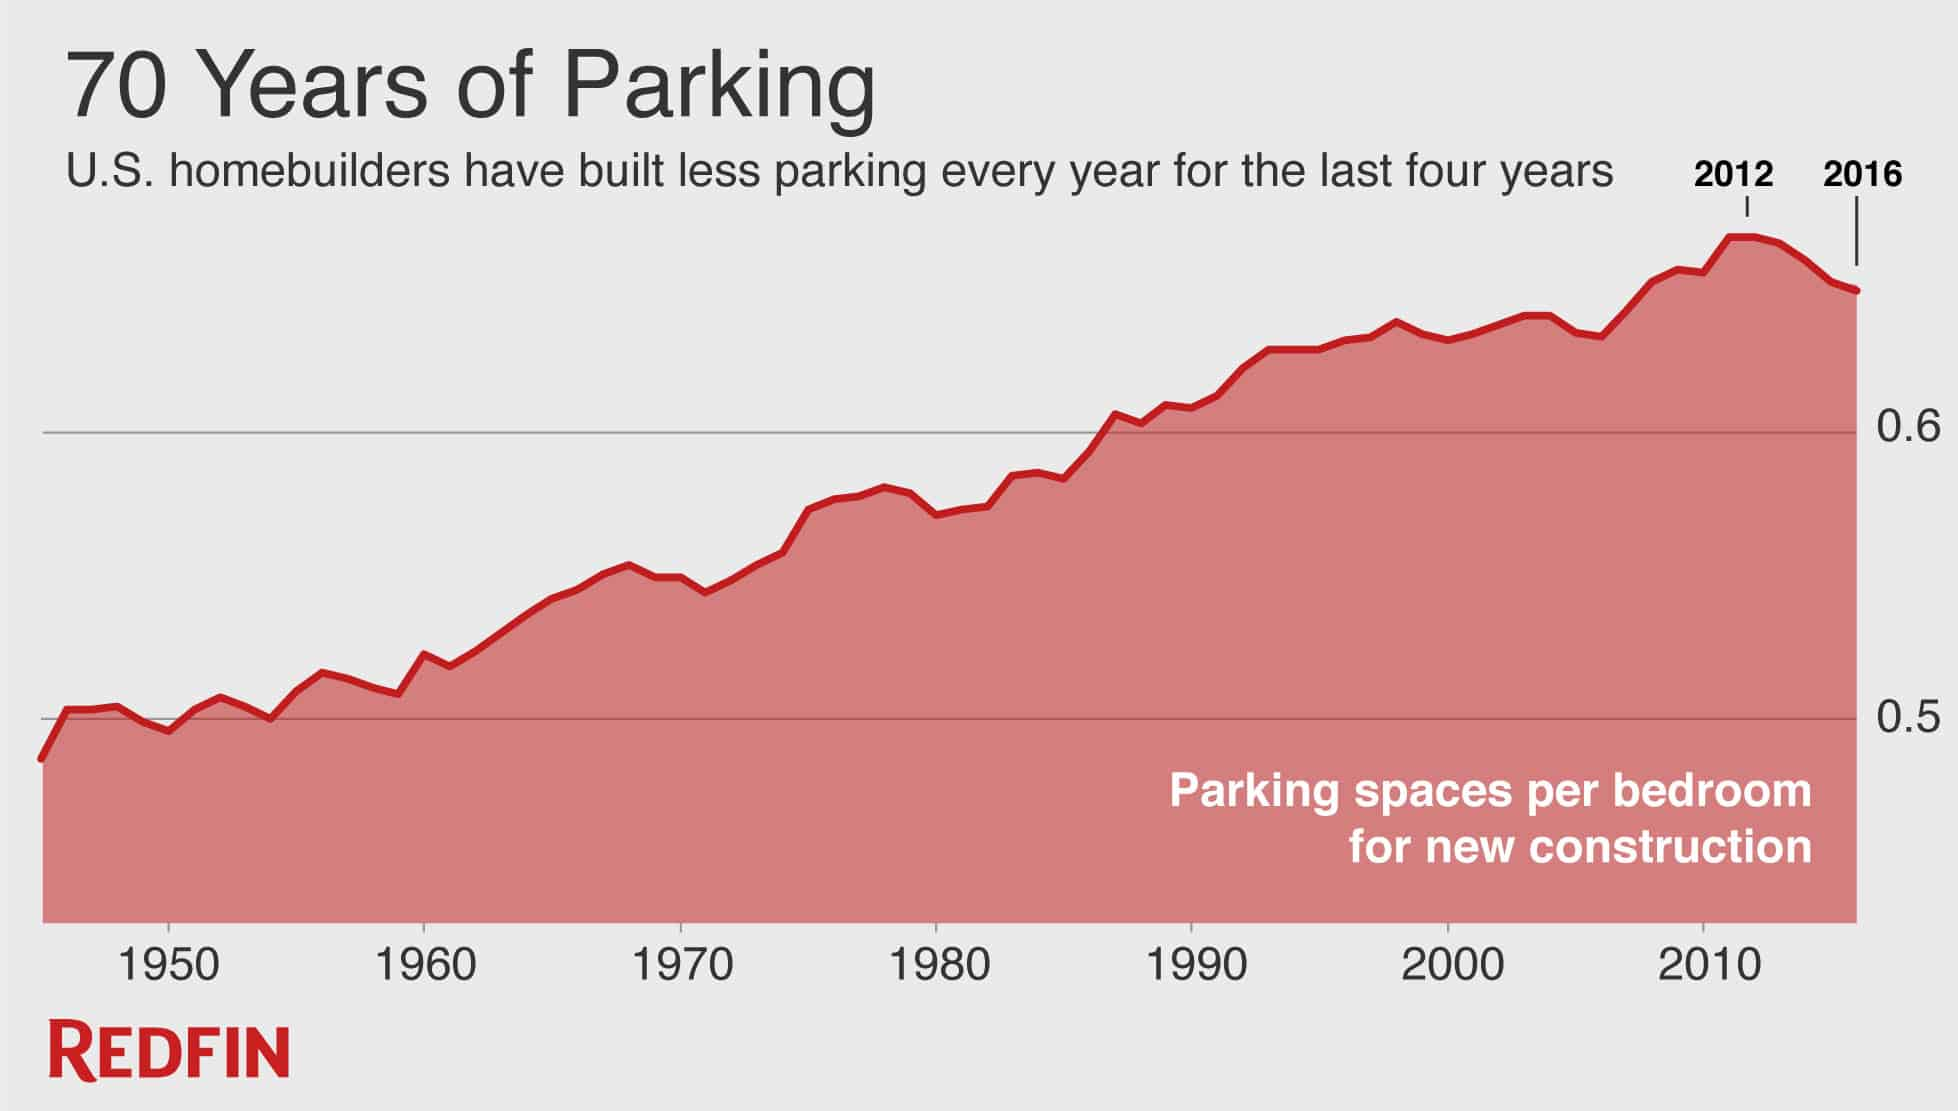 Seventy years of residential construction and parking